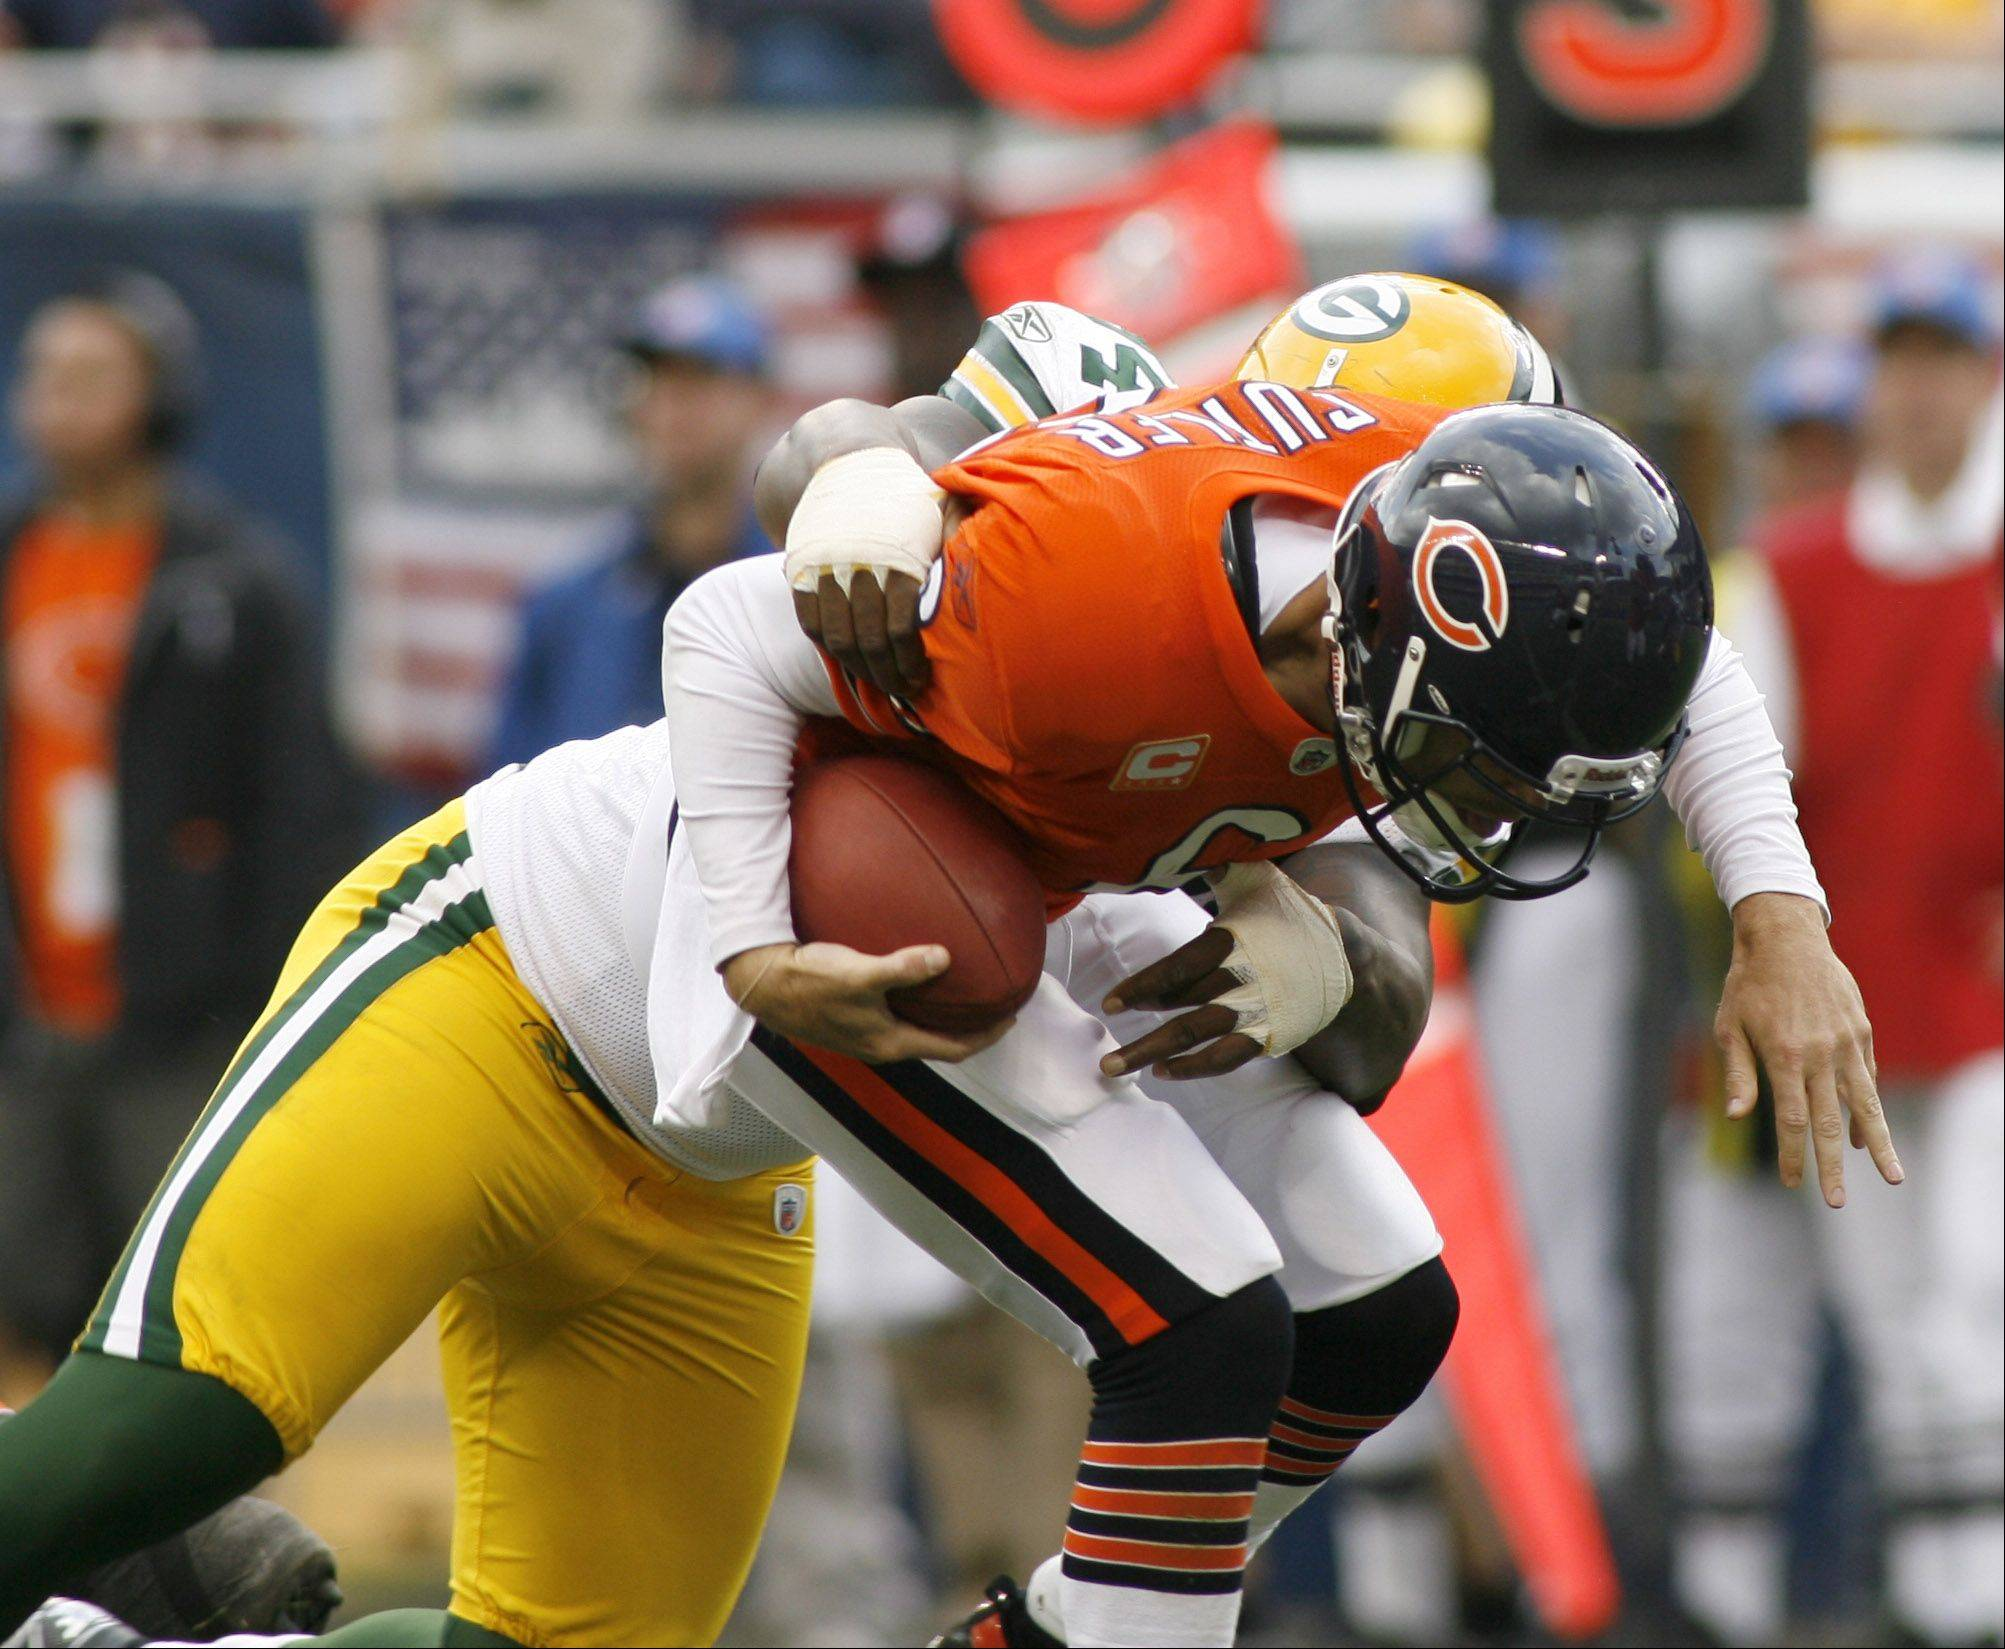 Jay Cutler is sacked during the second half of the Green Bay Packers� 27-17 win over the Chicago Bears.